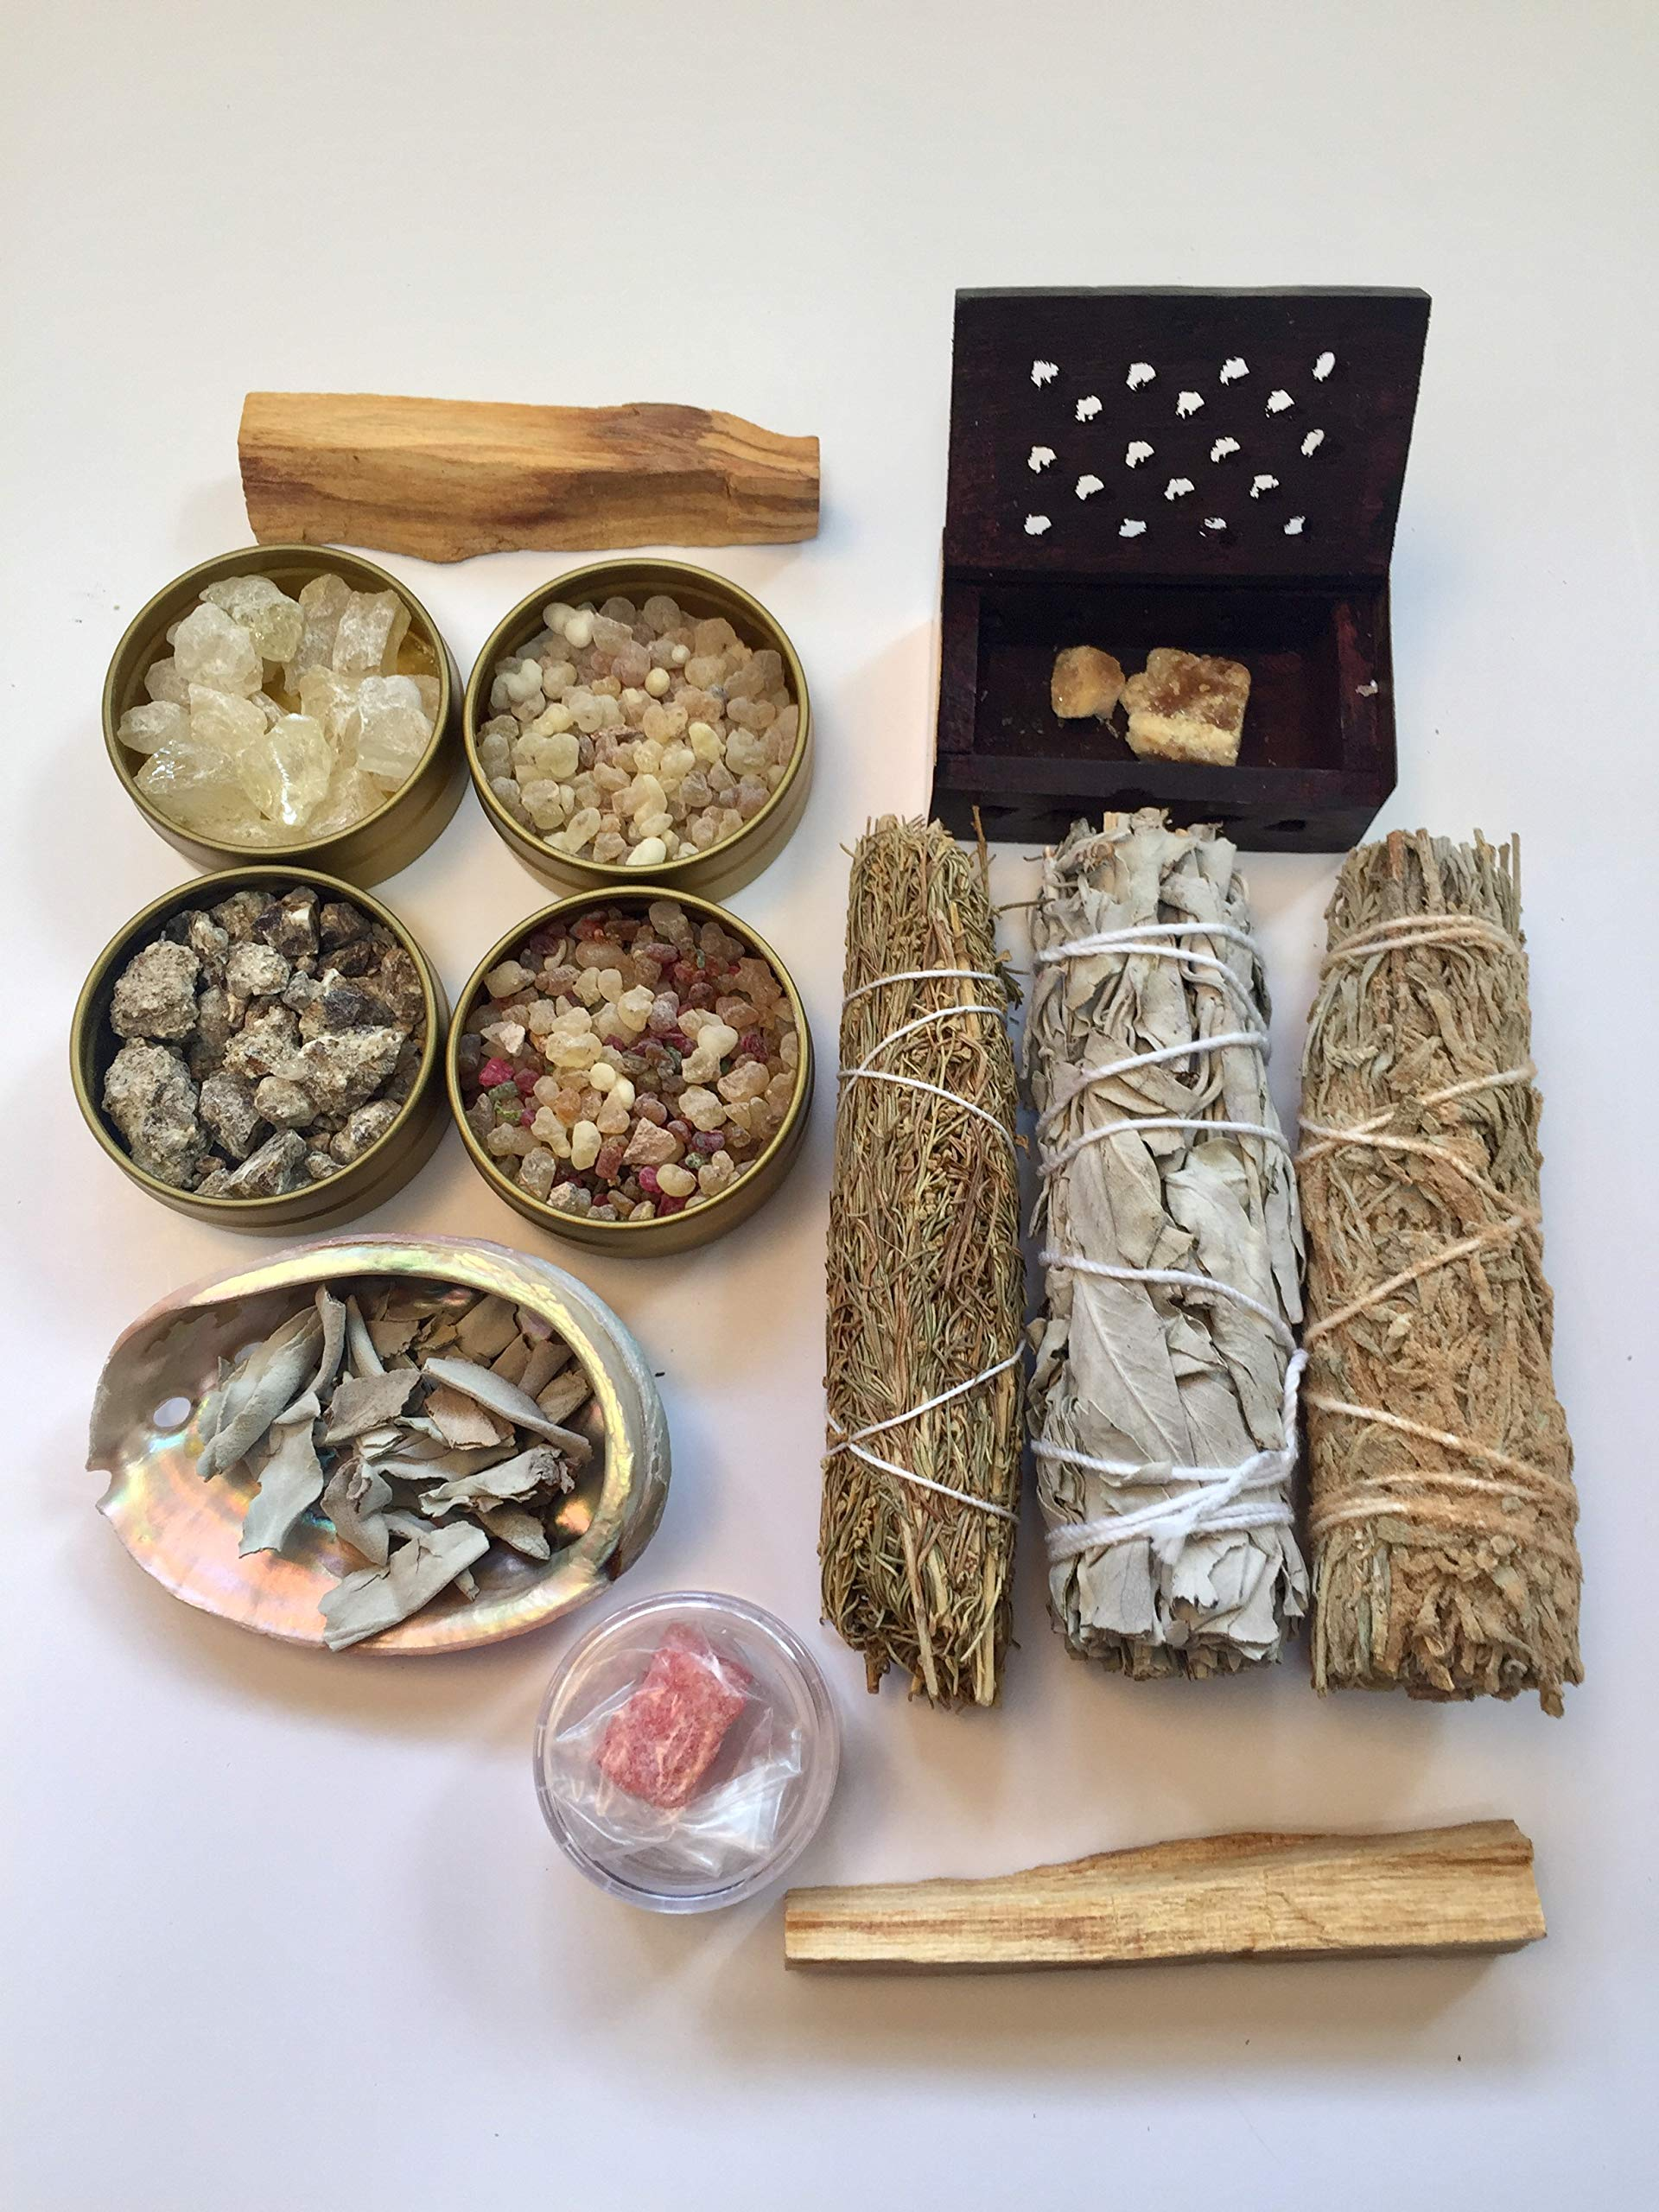 Resin Incense and Sage Smudges Variety Gift Kit includes, Amber Resin, Rose Resin, White Copal, Mystical Benzoin, Frankincense, White Sage Smudge, Desert Sage, Palo Santo Sticks and Abalone Shell by Sacred Scents For You (Image #7)